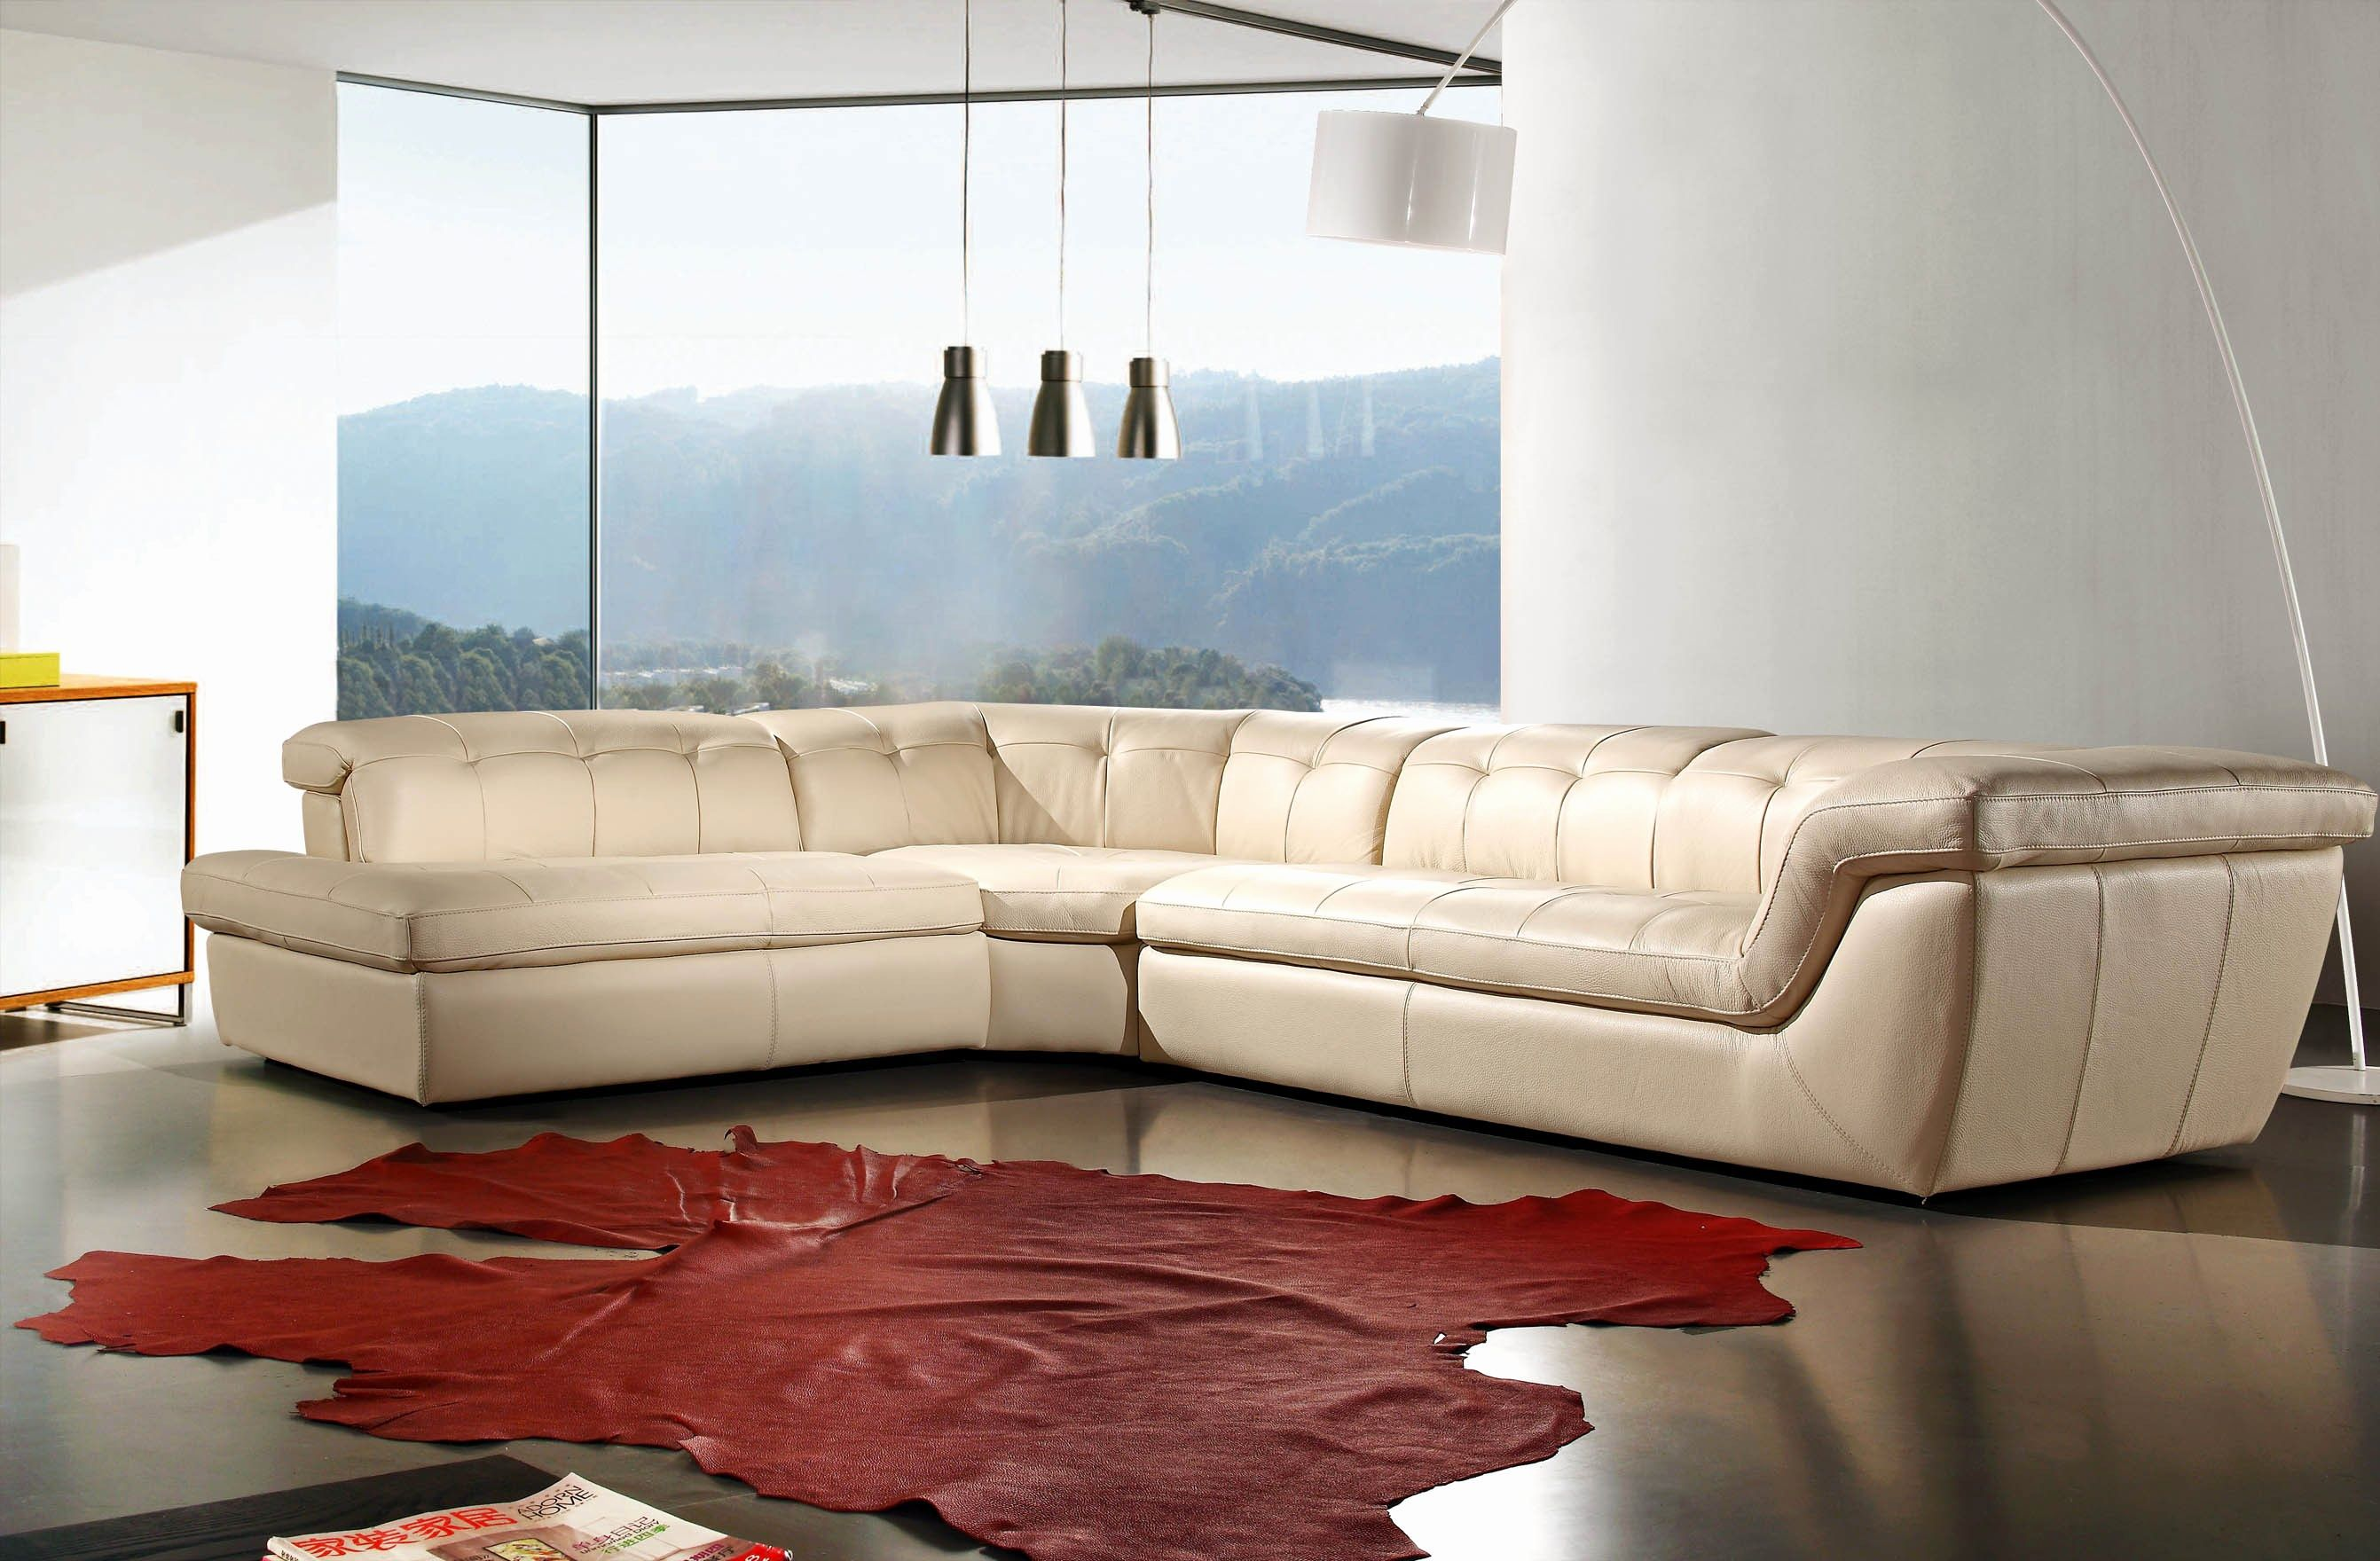 Lovely Contemporary Italian Leather Sofas Art Contemporary Italian Leather Sofas New Italian Leather Sectional Sofa Corner Sectional Sofa Modern Sofa Sectional